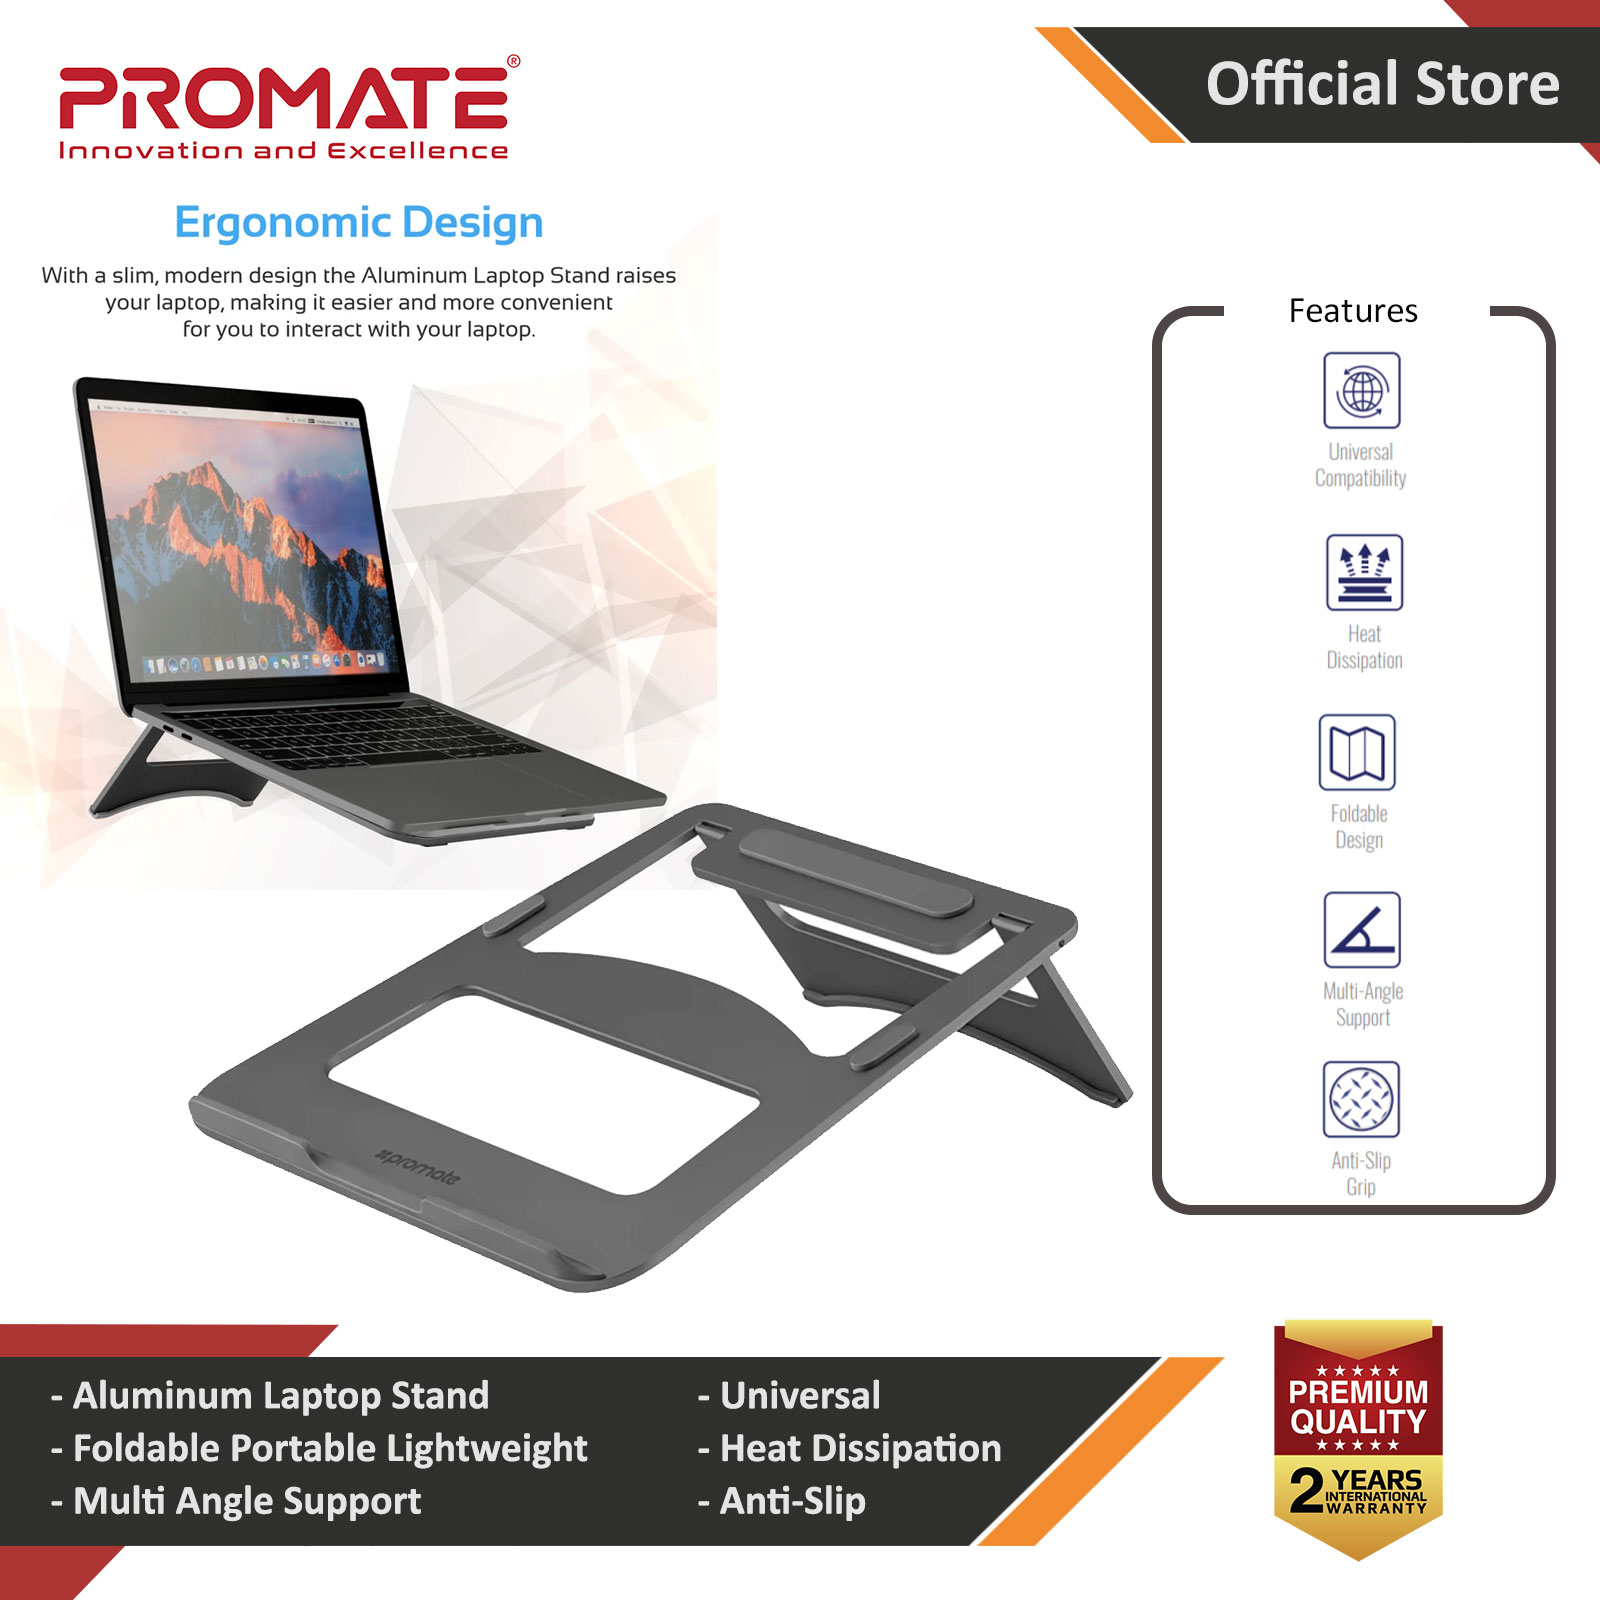 Picture of Promate Laptop Stand Premium Ultra-Slim Portable Adjustable Aluminium Laptop Stand with Folding Holder Anti-Slip Grip and Heat Dissipation for Apple MacBook Pro Laptops Notebook Red Design- Red Design Cases, Red Design Covers, iPad Cases and a wide selection of Red Design Accessories in Malaysia, Sabah, Sarawak and Singapore